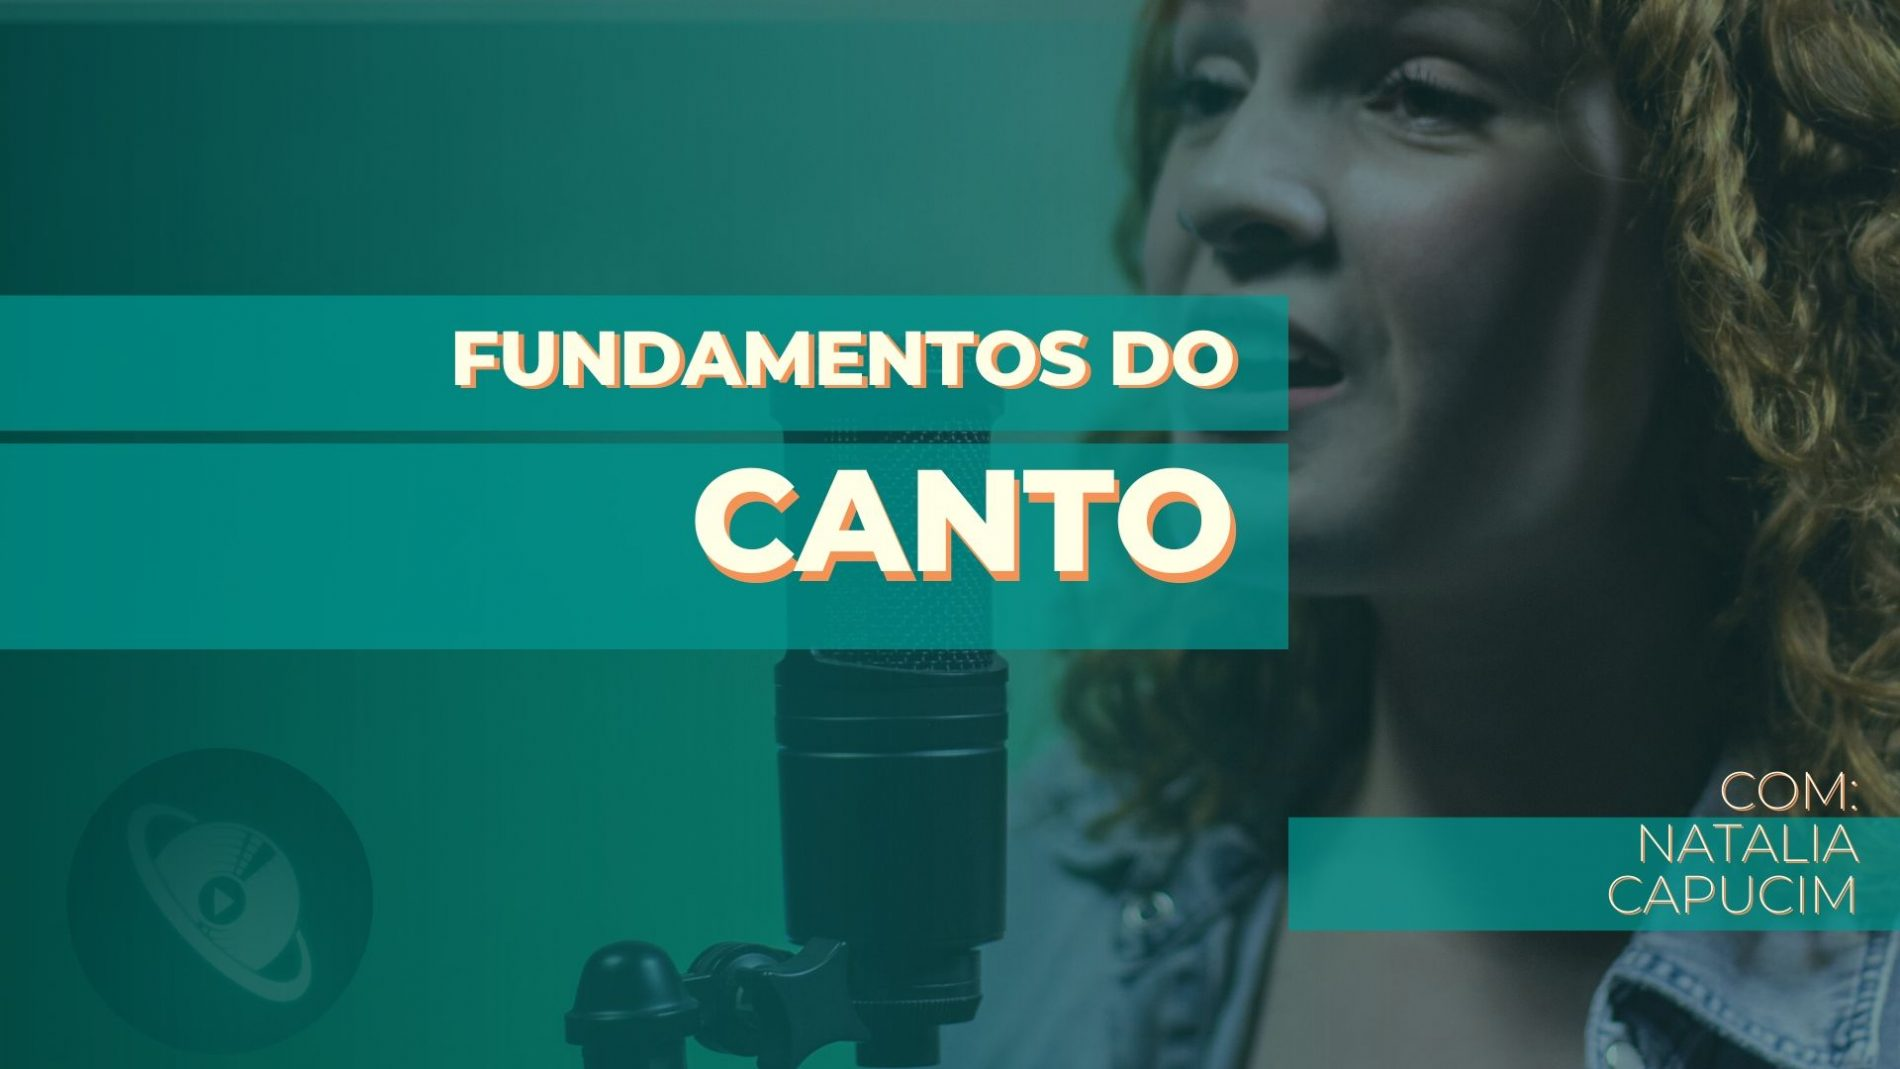 curso fundamentos do canto